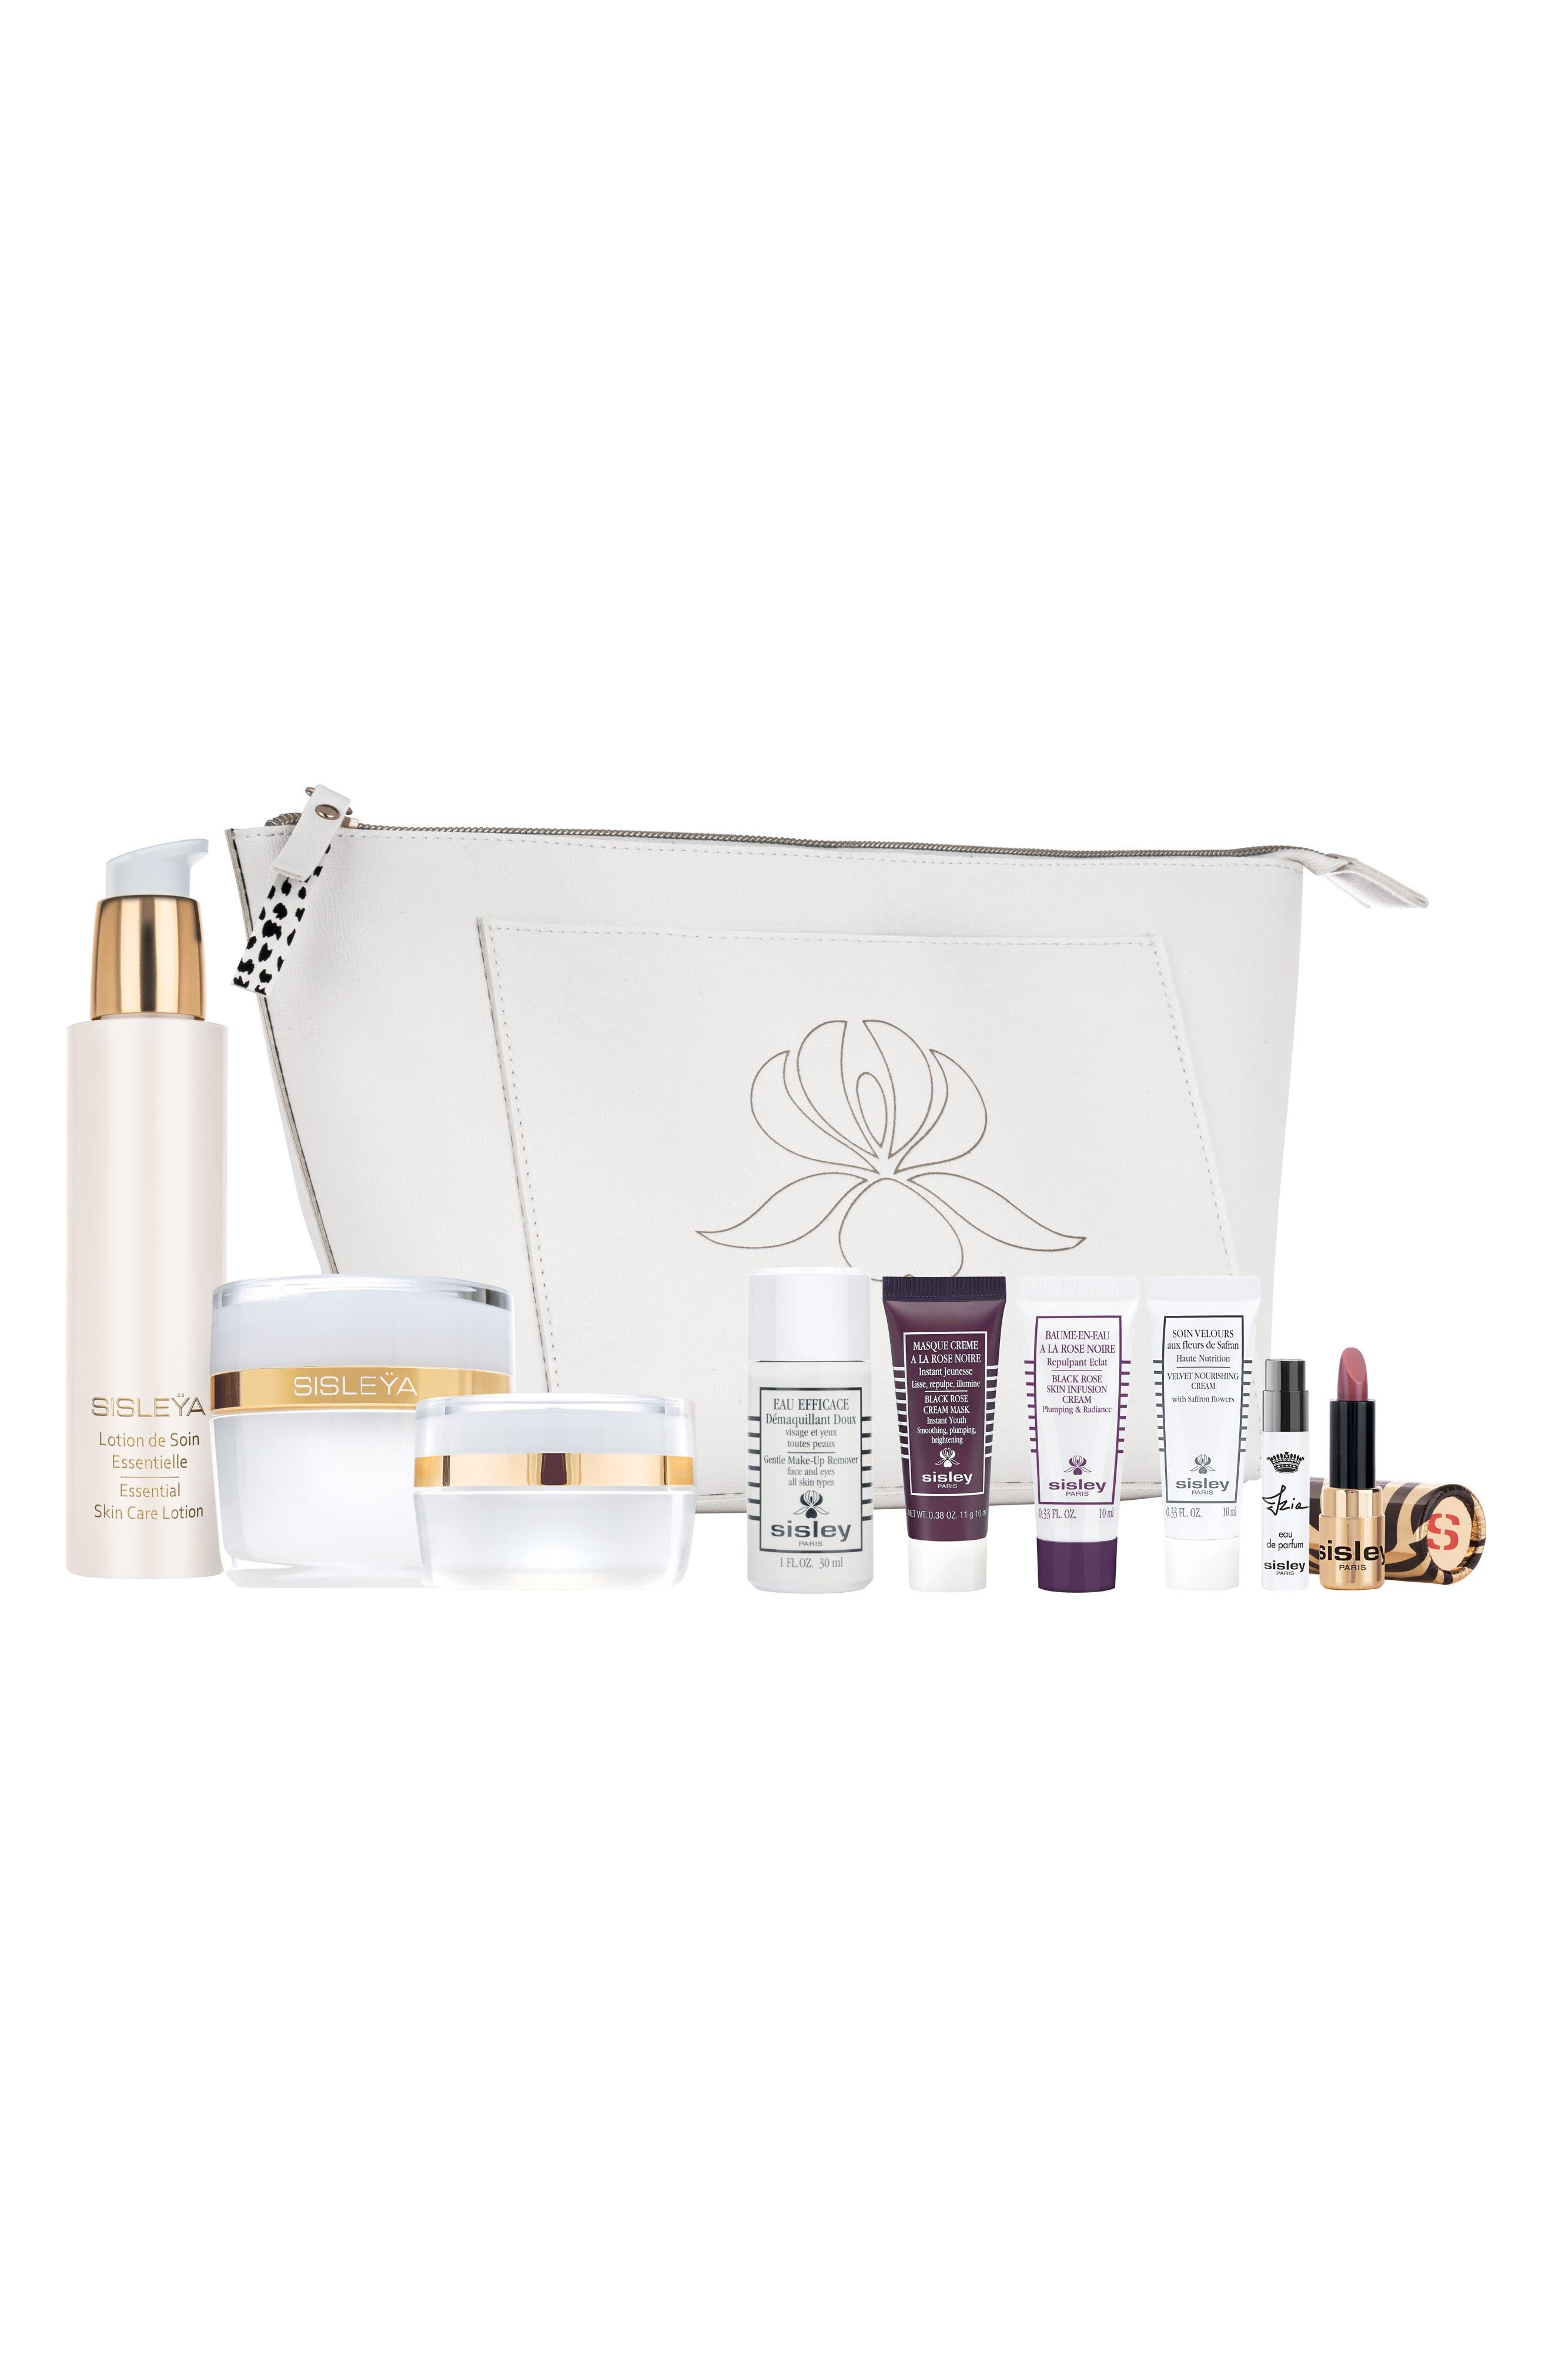 What it is: A deluxe set featuring full and travel sizes of Sisley Paris favorites for hydrated, cleansed and fragranced skin. Set includes:- Full-size Sisleya Essential Skin Care Lotion (5 oz.): a primary source of essential skin care ingredients that\\\'s the first step of your anti-aging routine- Full-size Sisleya L\\\'Integral Anti-Age Cream (1.6 oz.): an anti-aging cream that acts on genetic, environmental and behavioral aging, targeting